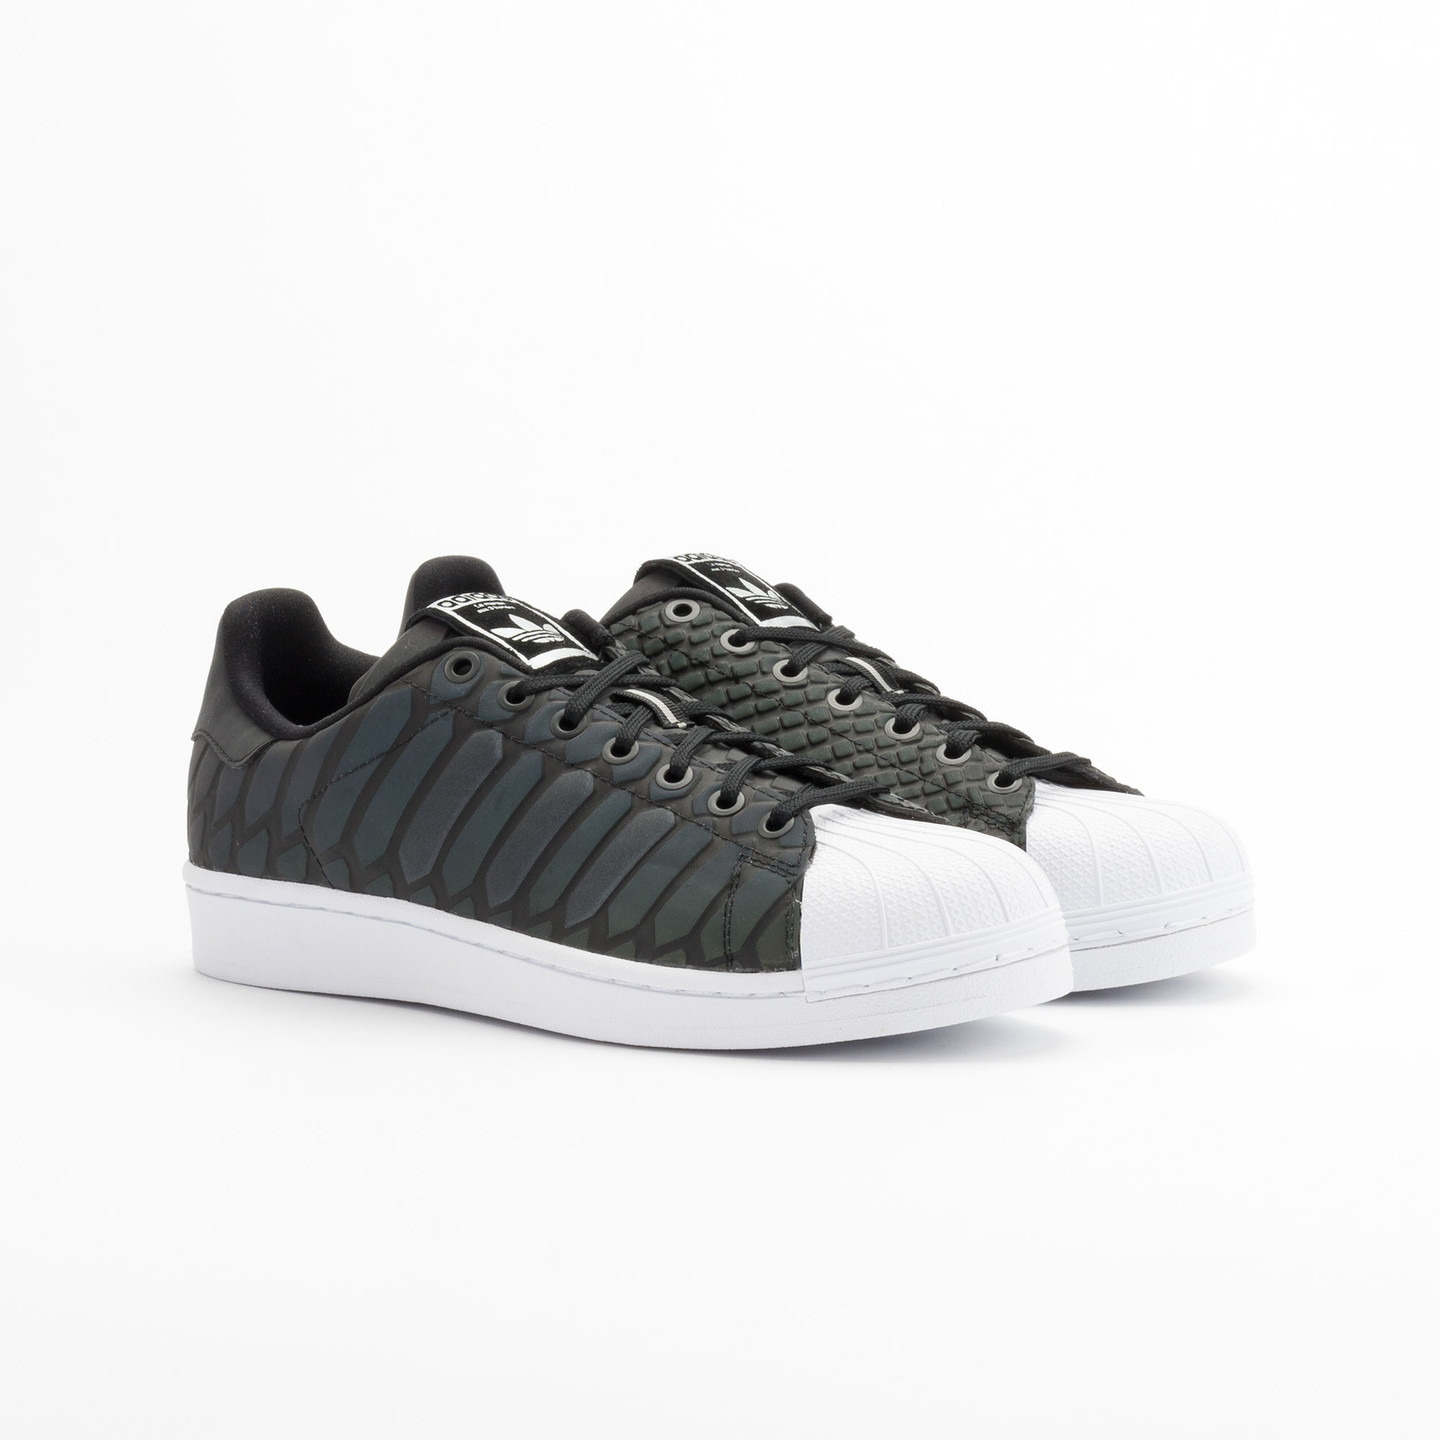 Adidas Superstar Xeno Pack Cblack / Supcol / Ftwwht D69366-45.33